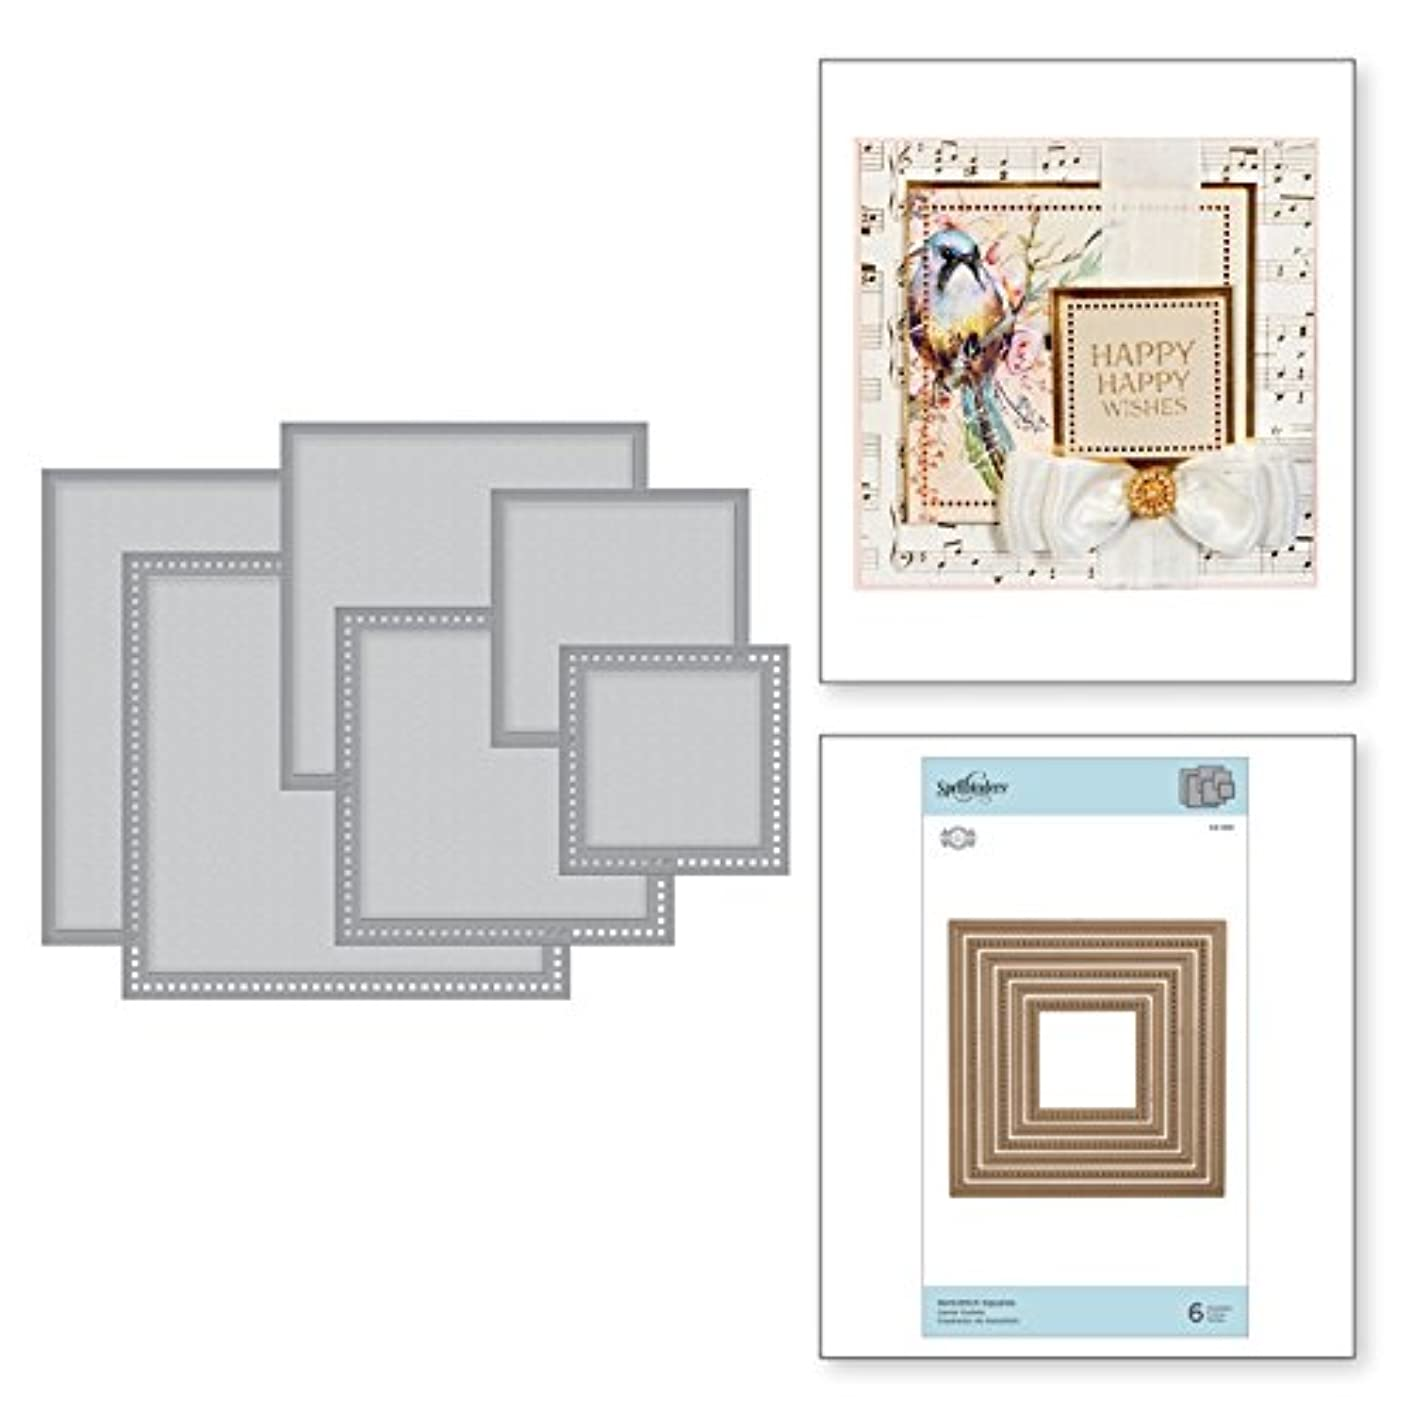 Spellbinders S4-929 Nestabilities Hemstitch Squares Etched/Wafer Thin Dies